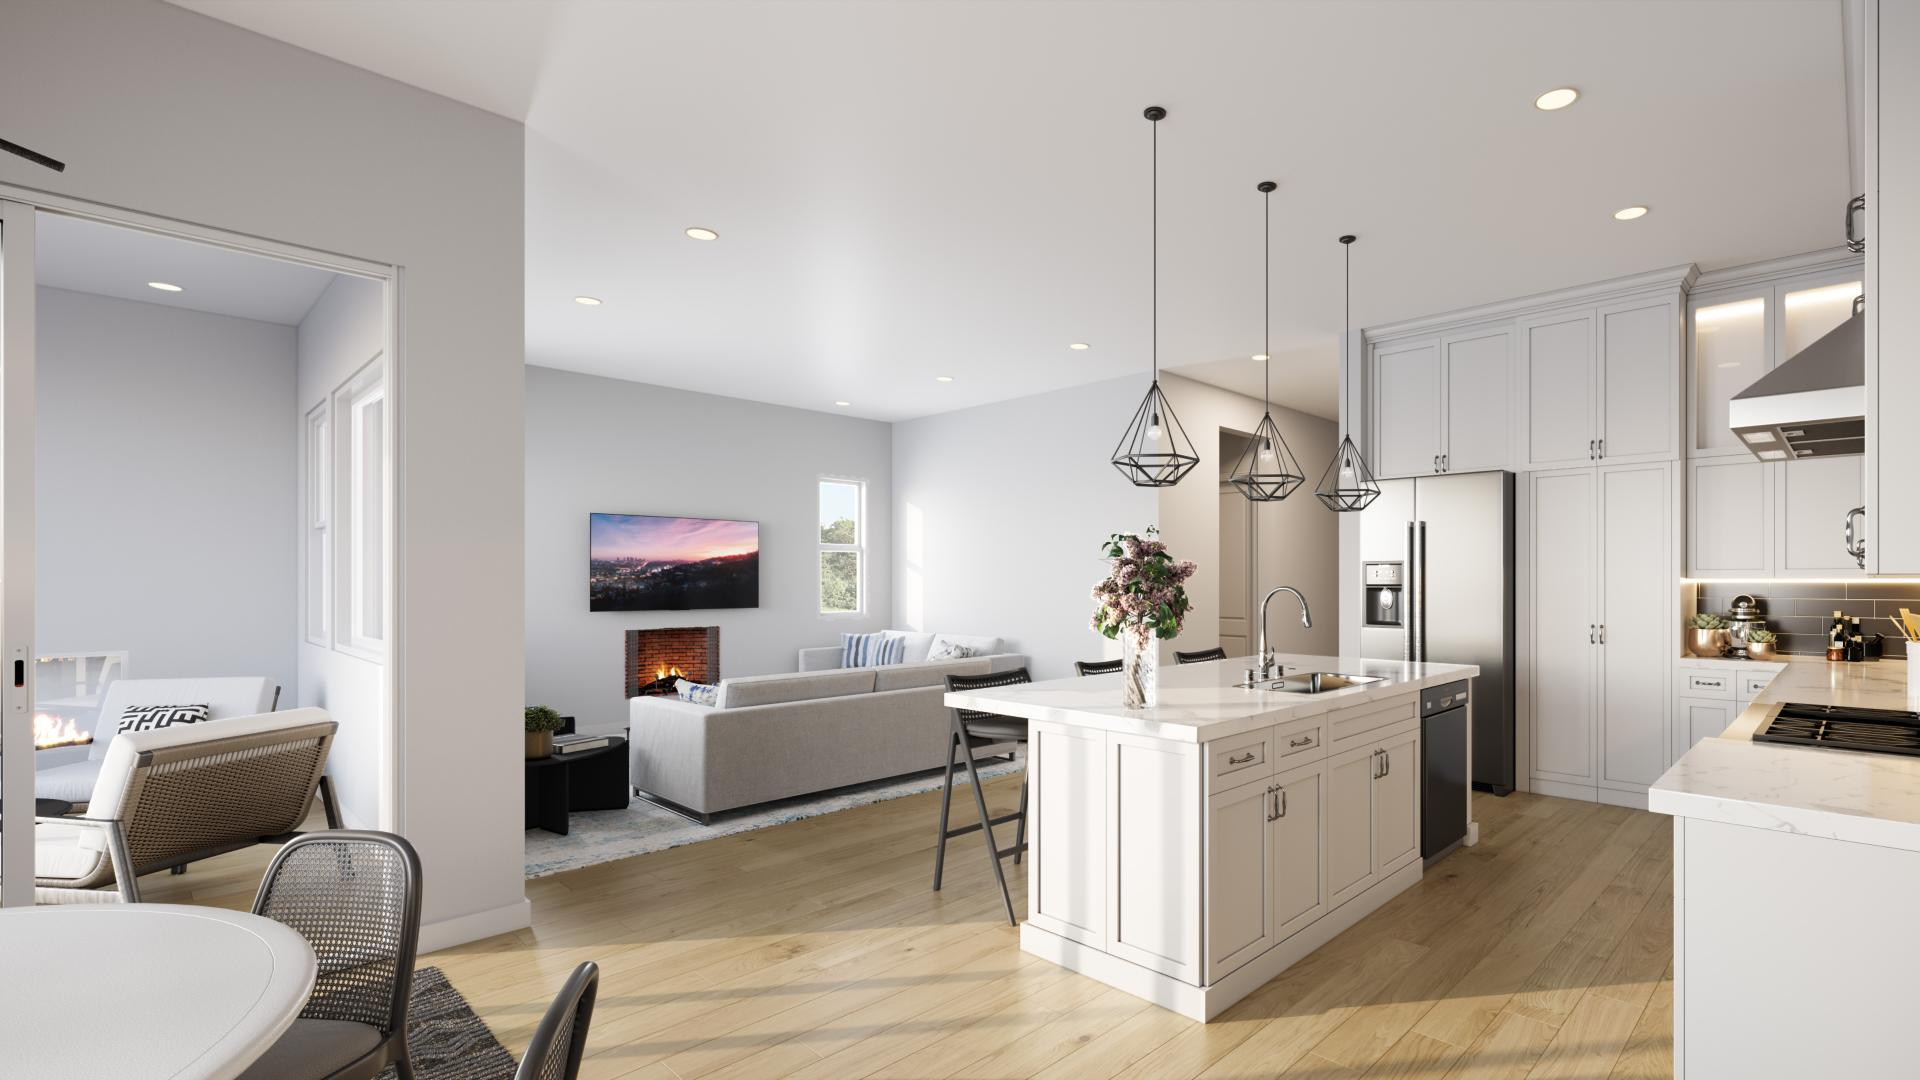 Perfect for entertaining, all homes have an open floor plan